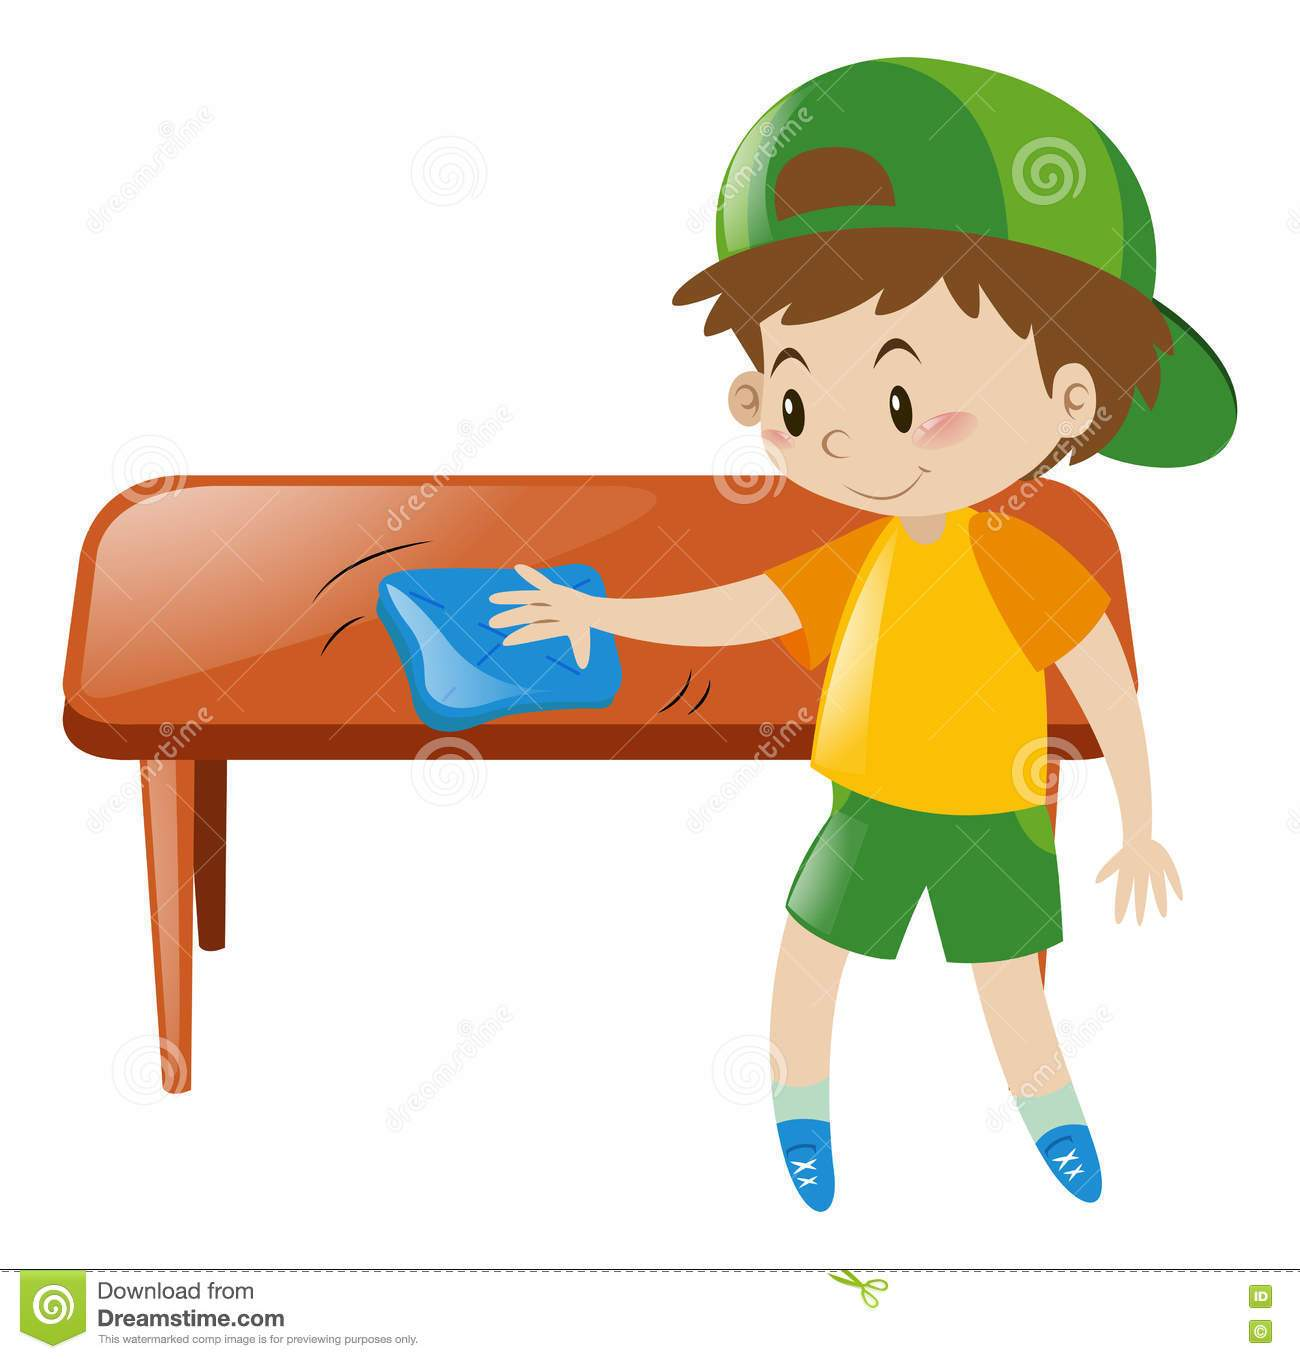 Table cleaner clipart 2 » Clipart Portal.